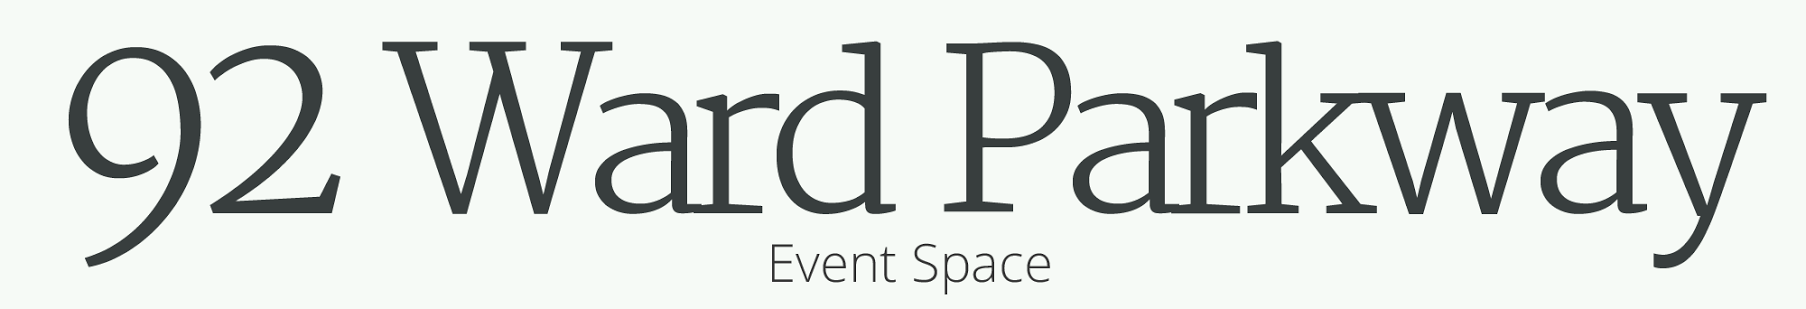 92 Ward Parkway Event Space